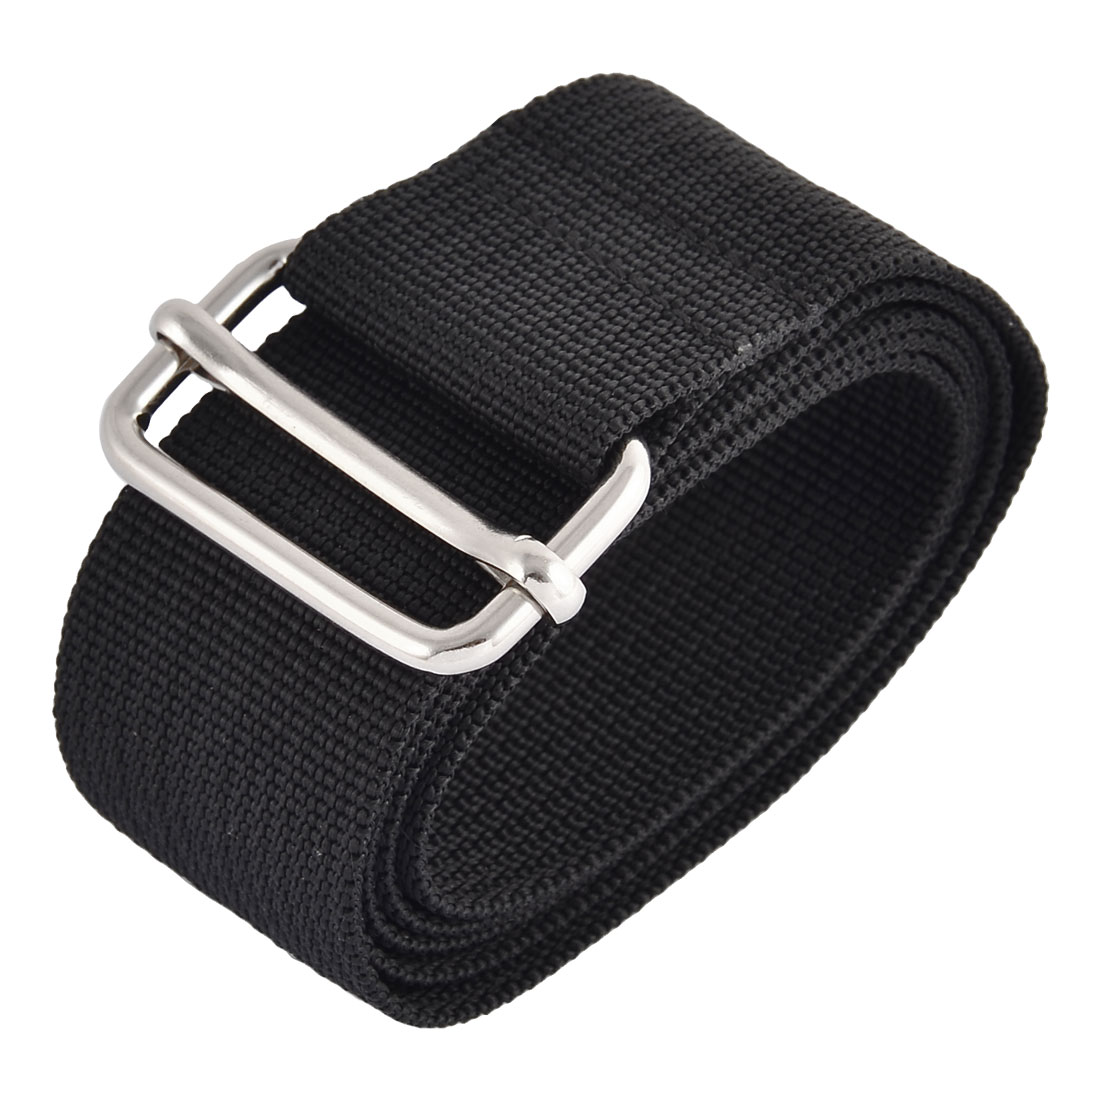 Household Travel Nylon Adjustable Suitcase Luggage Strap Belt Buckle Black 1M Length